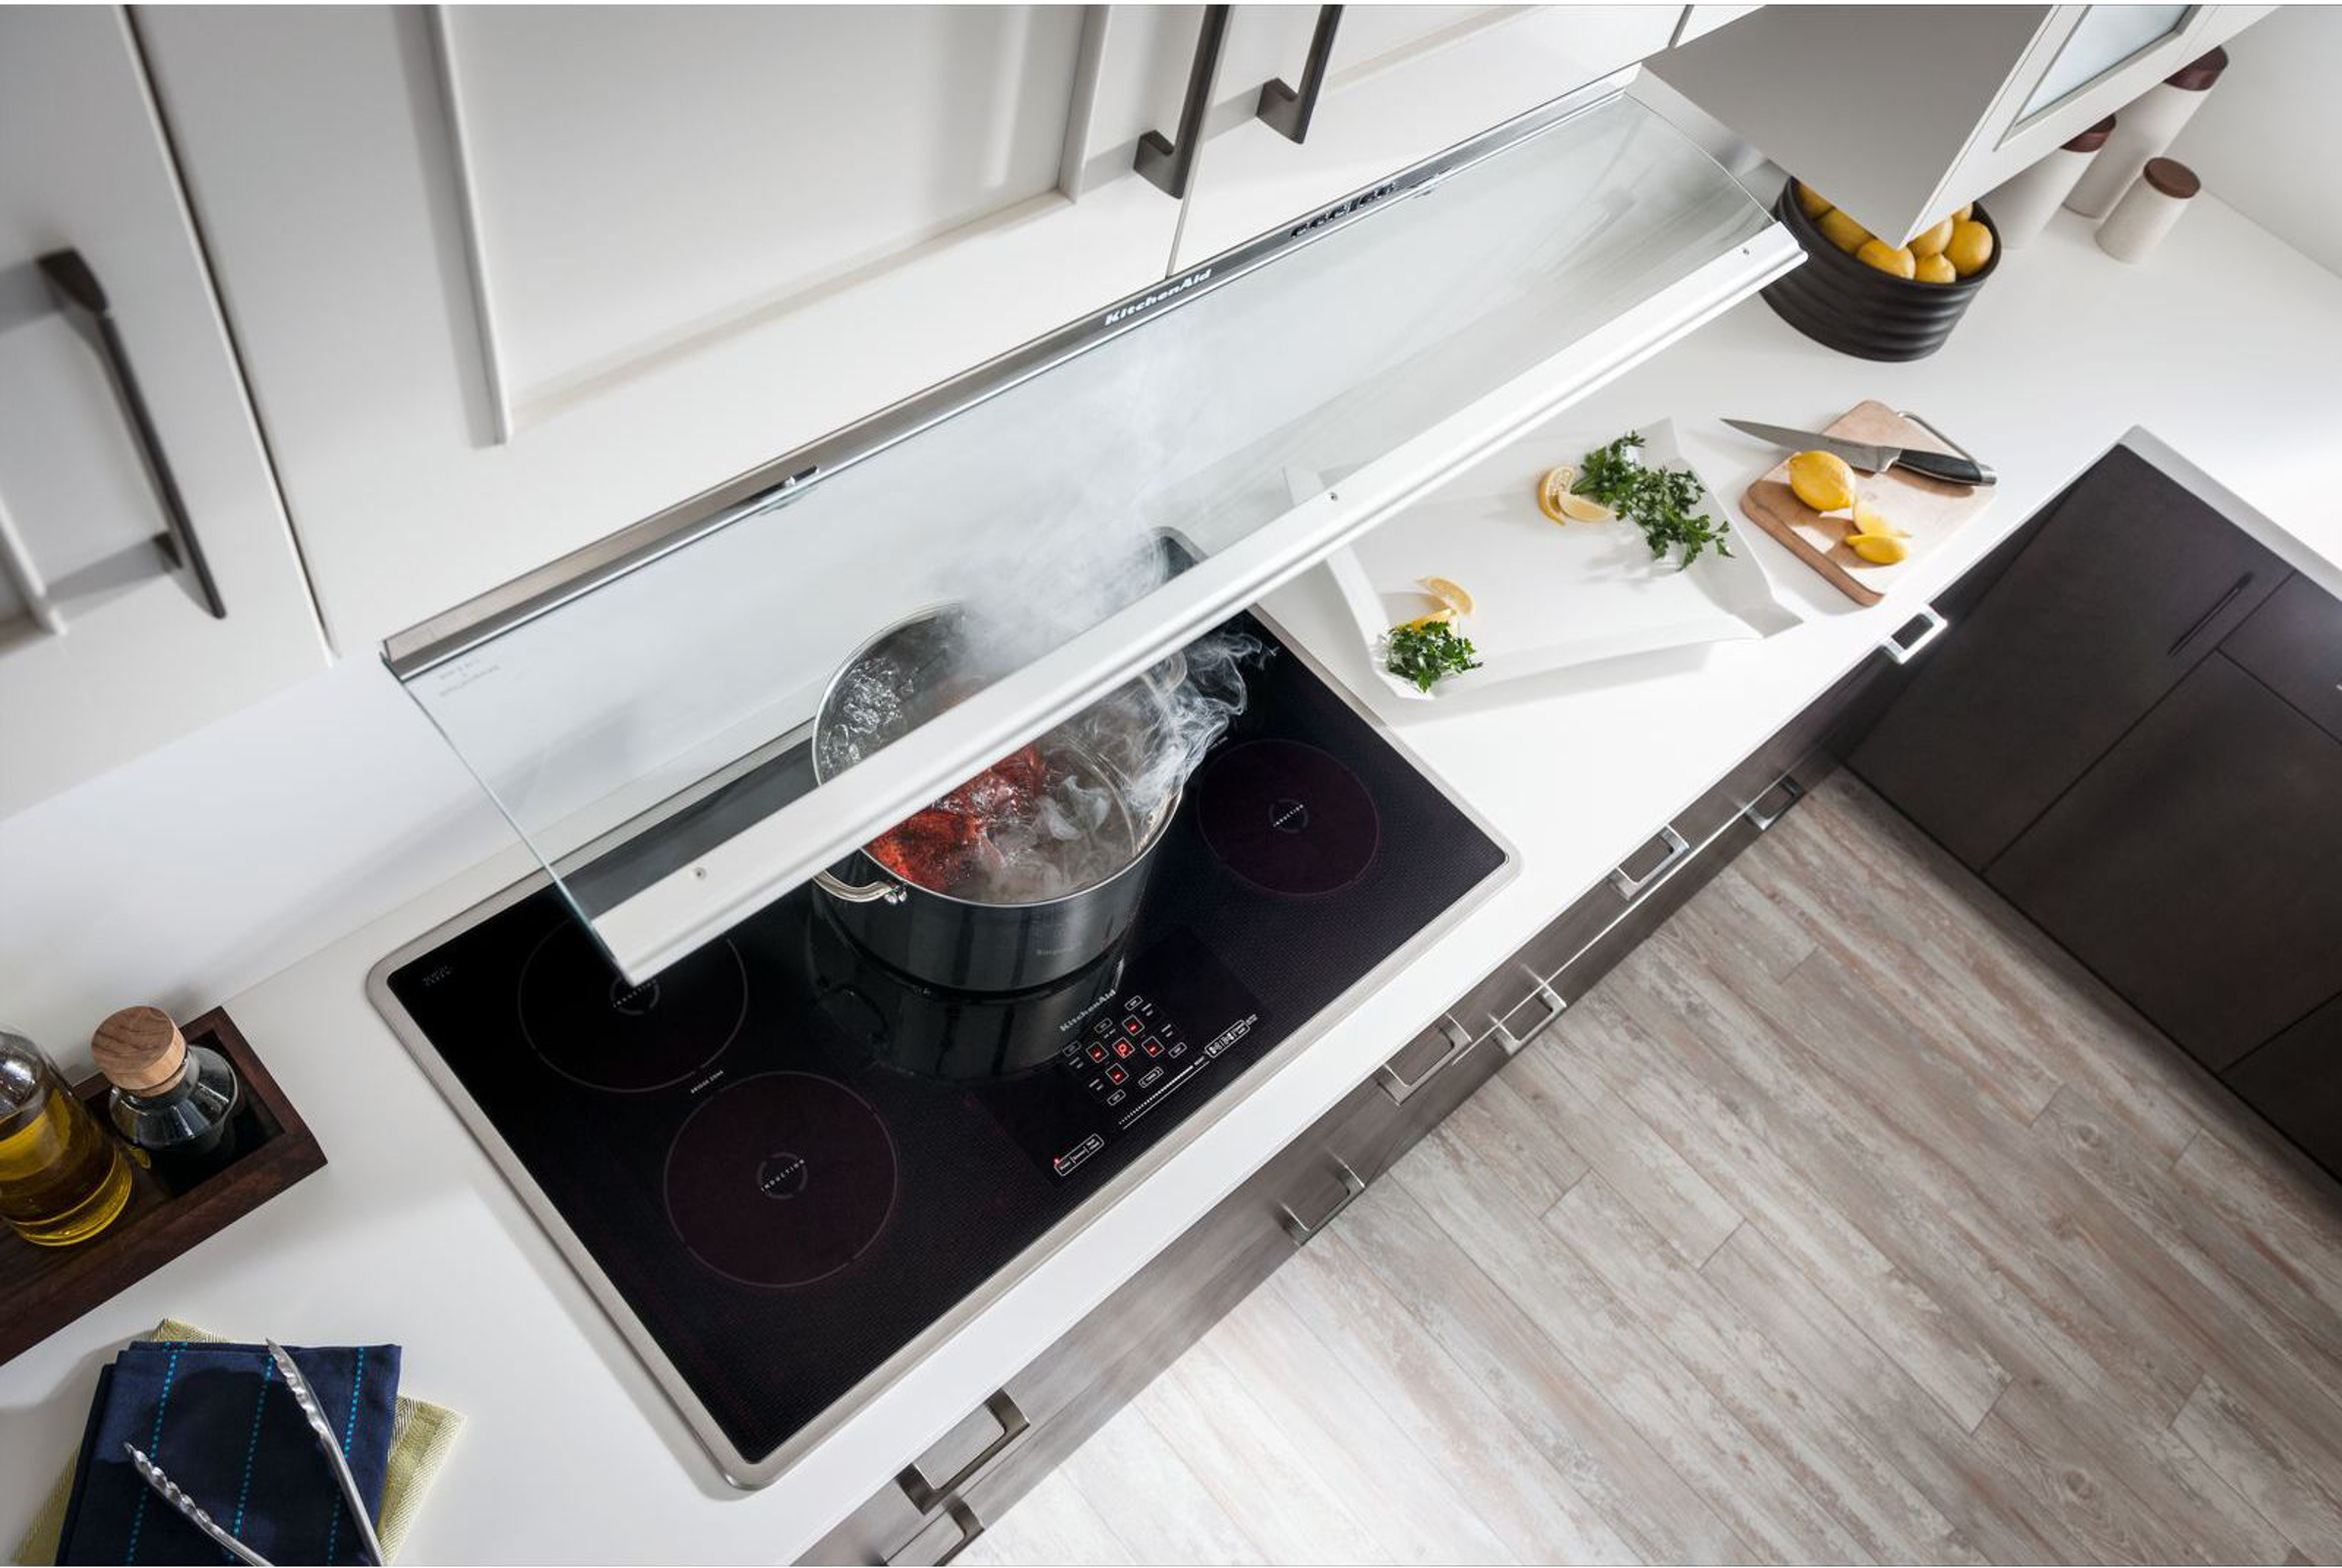 KitchenAid KXU2836YSS 36 in. Specialty Series Slide-Out Range Hood